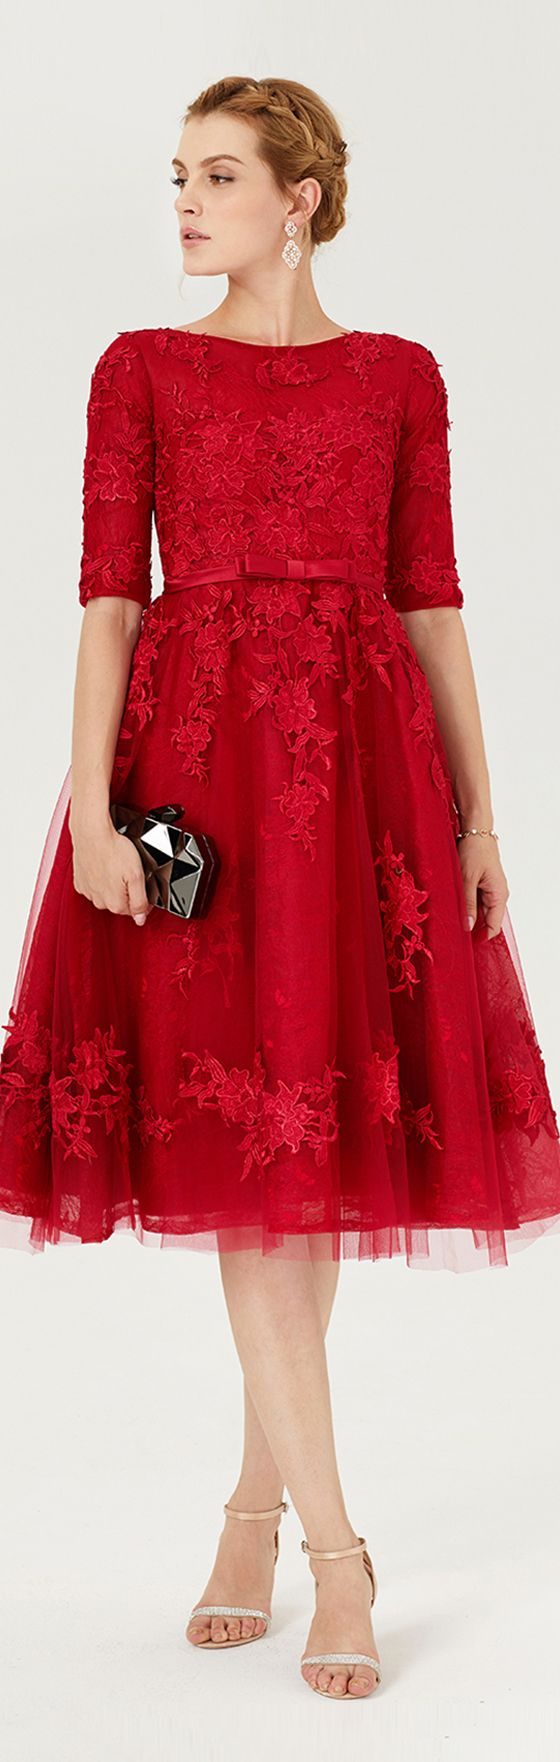 Princess jewel neck knee length lace over tulle cocktail party dress